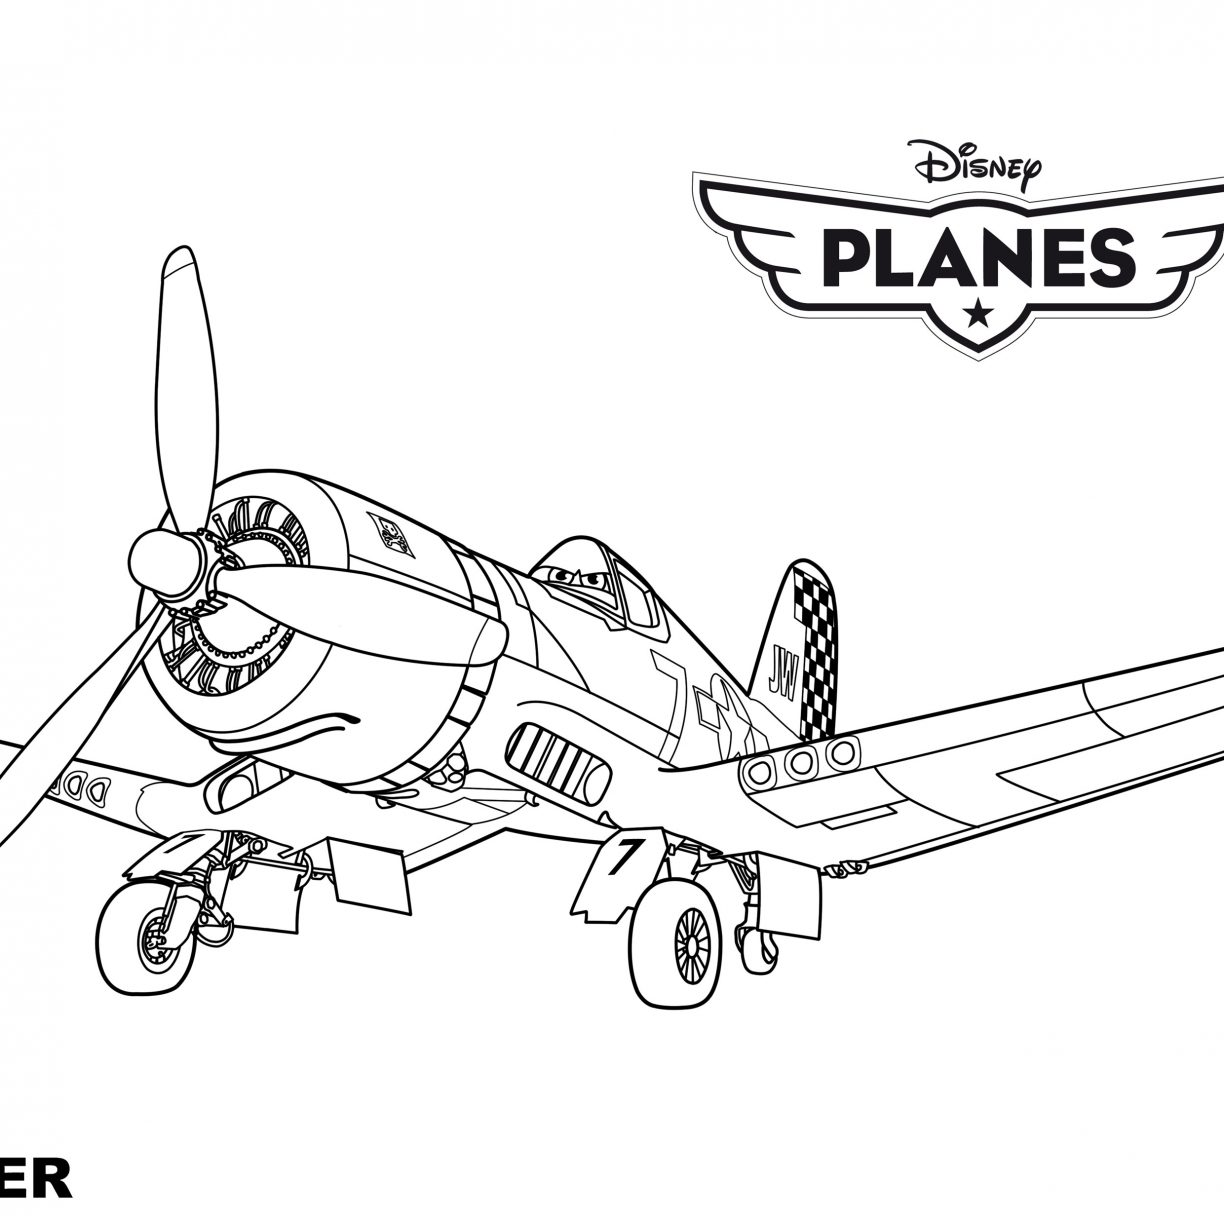 1224x1224 Printable Military Aircraft Carrier Coloring Sheet For Kids Planes